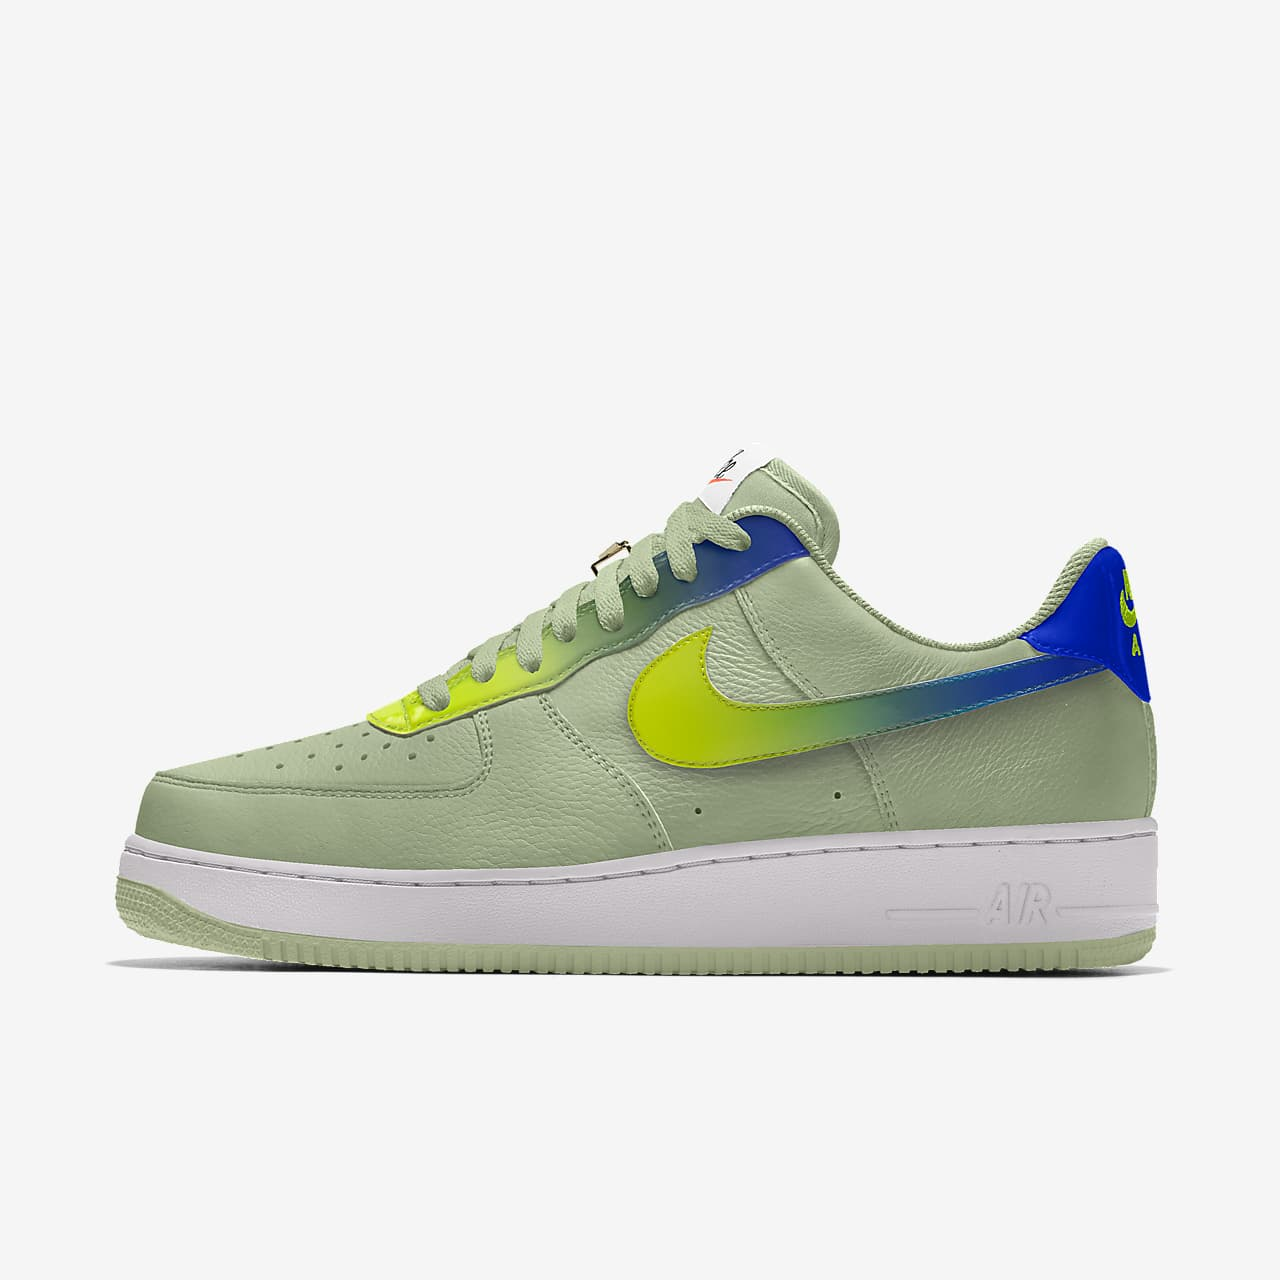 Chaussure personnalisable Nike Air Force 1 Low Unlocked pour Homme ...